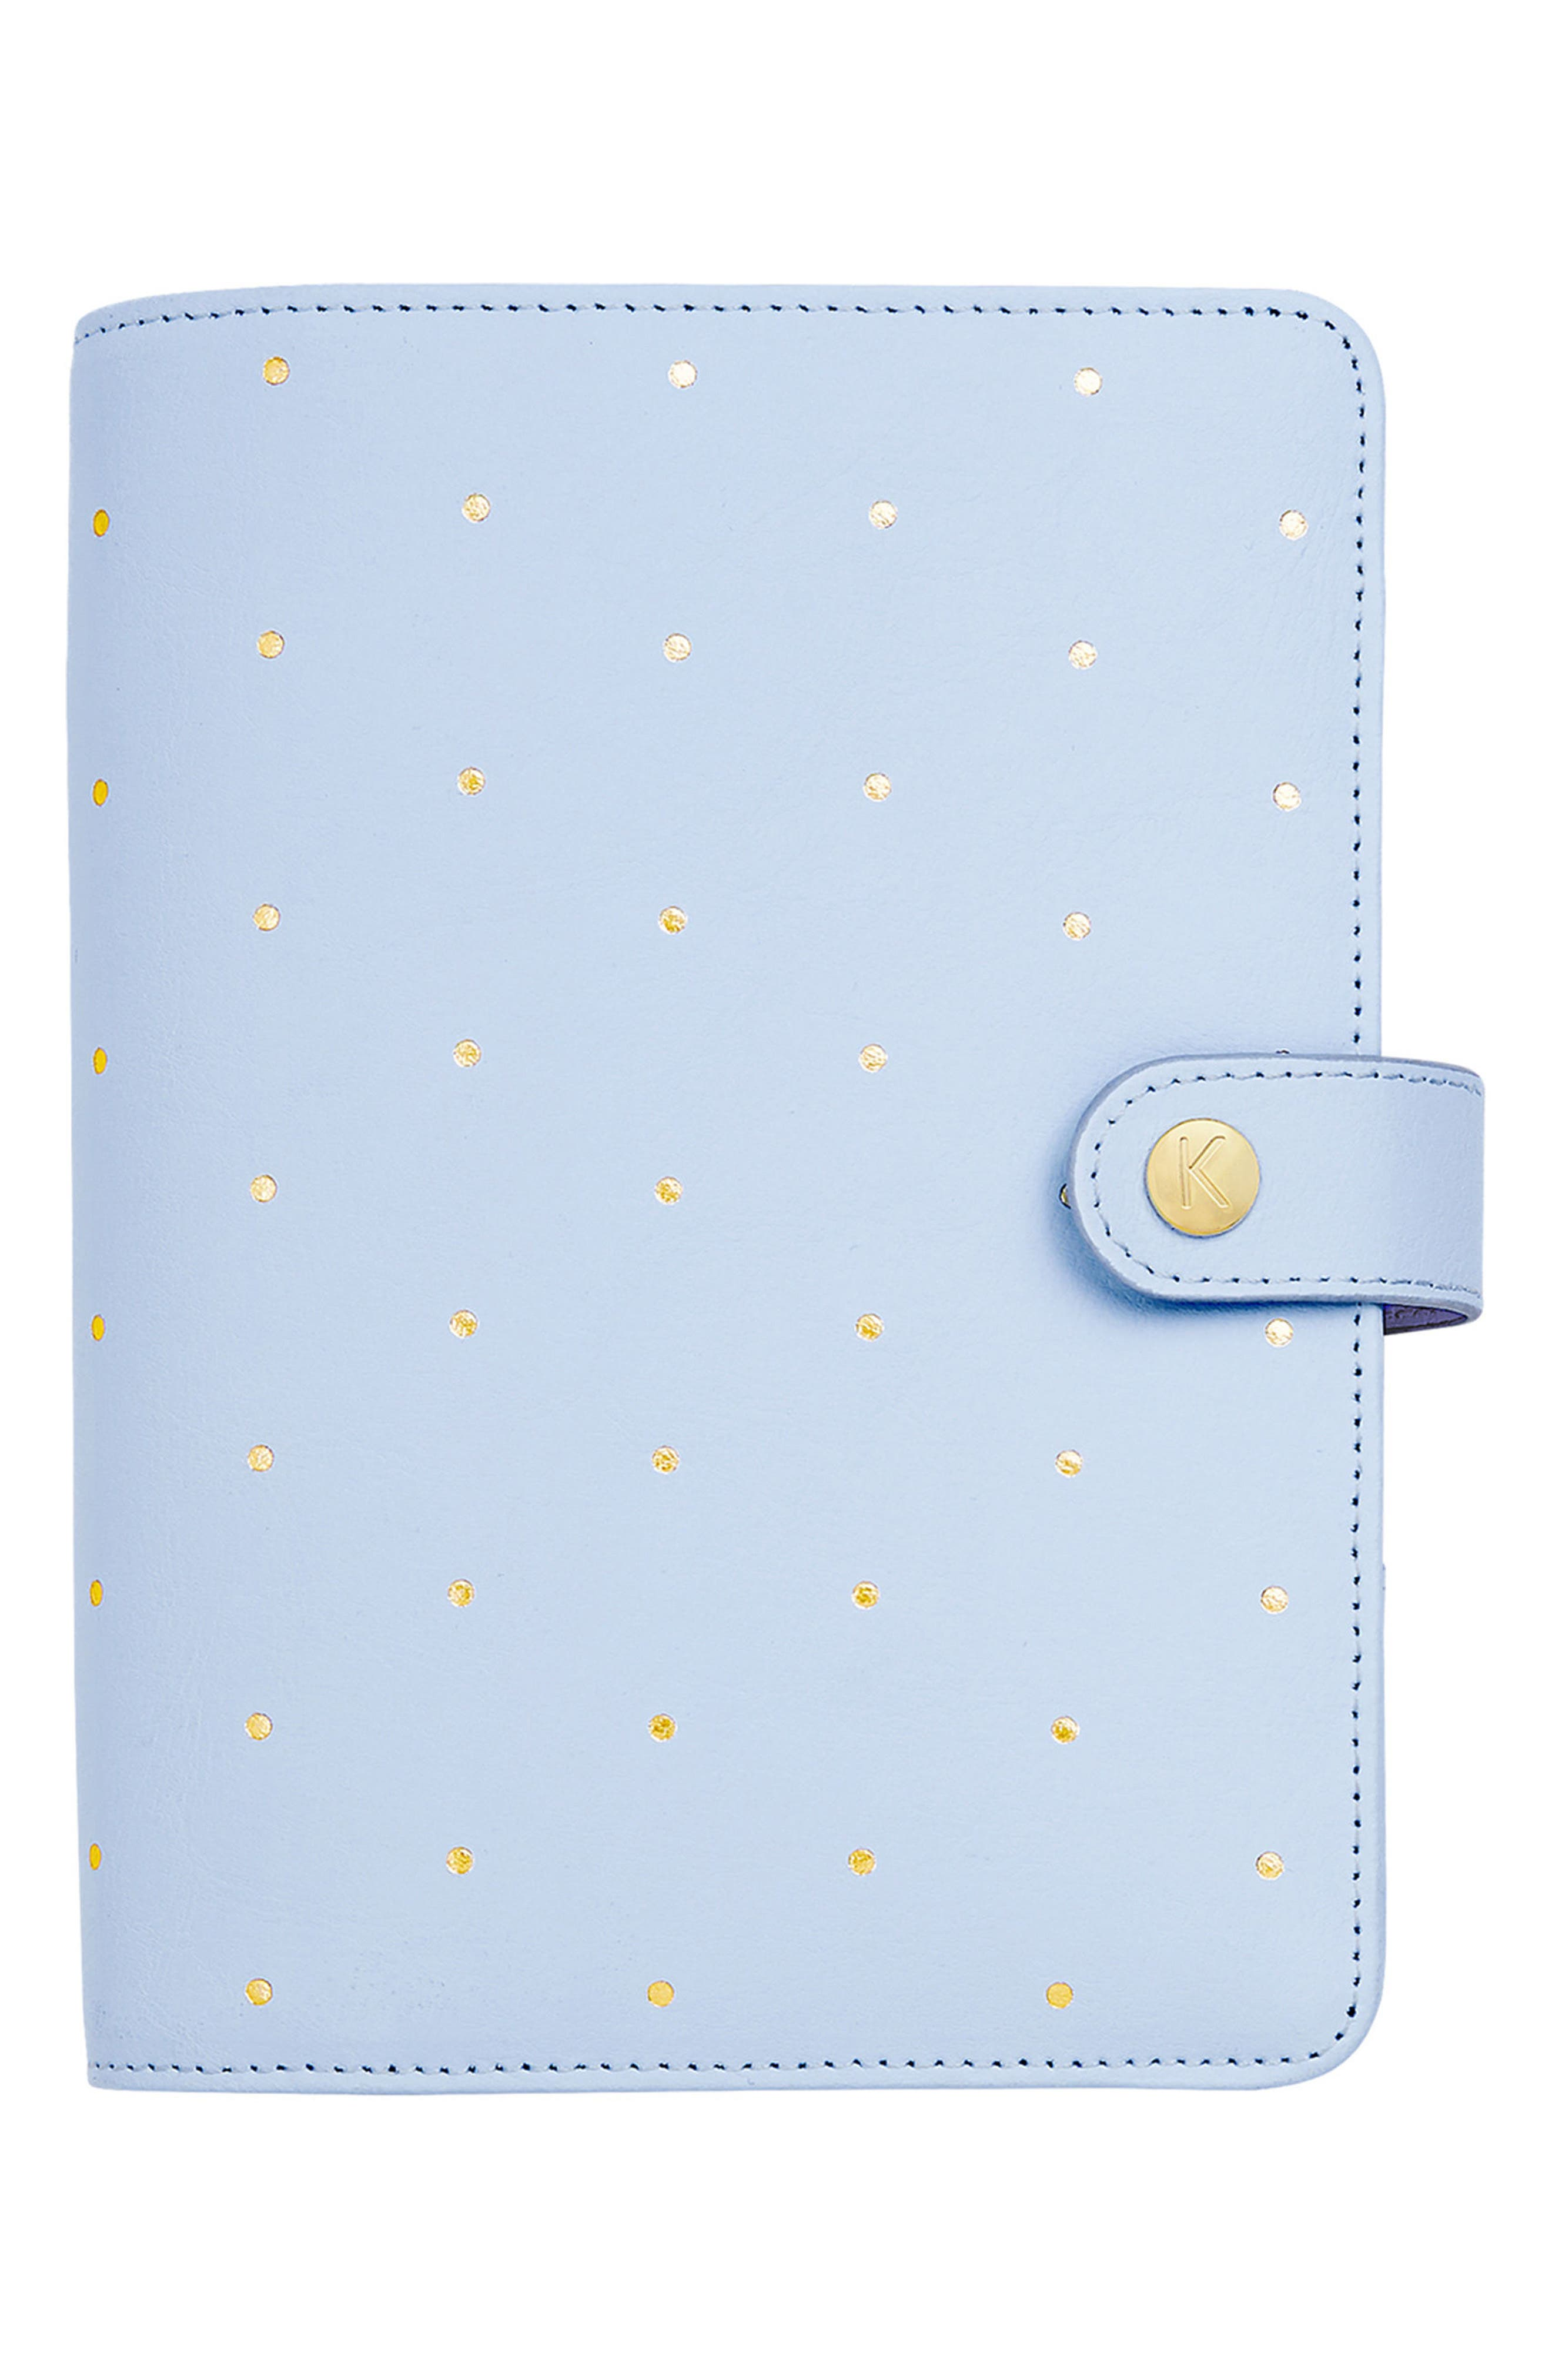 Medium Leather Personal Planner,                             Main thumbnail 1, color,                             SOFT BLUE